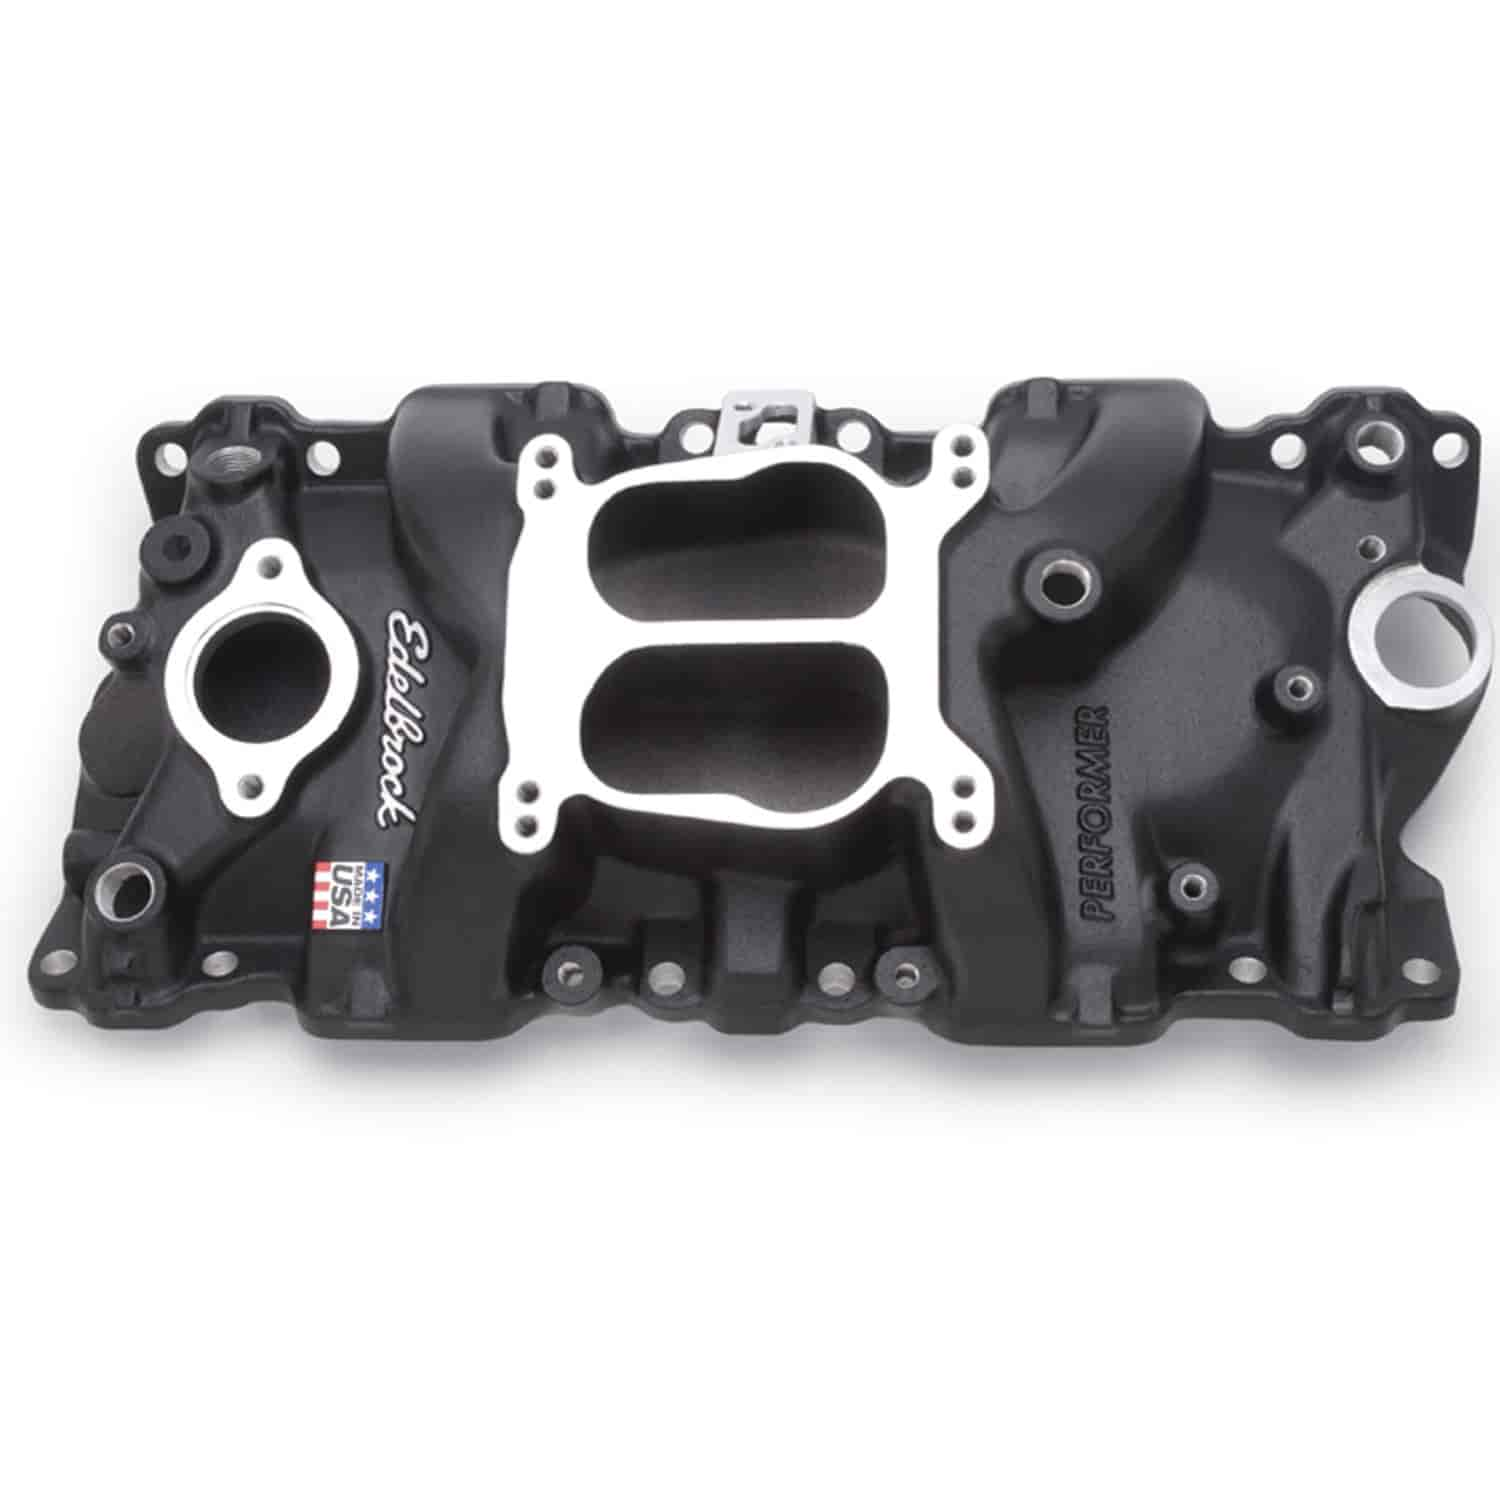 Edelbrock 21043 - Edelbrock Performer Intake Manifolds for Chevy